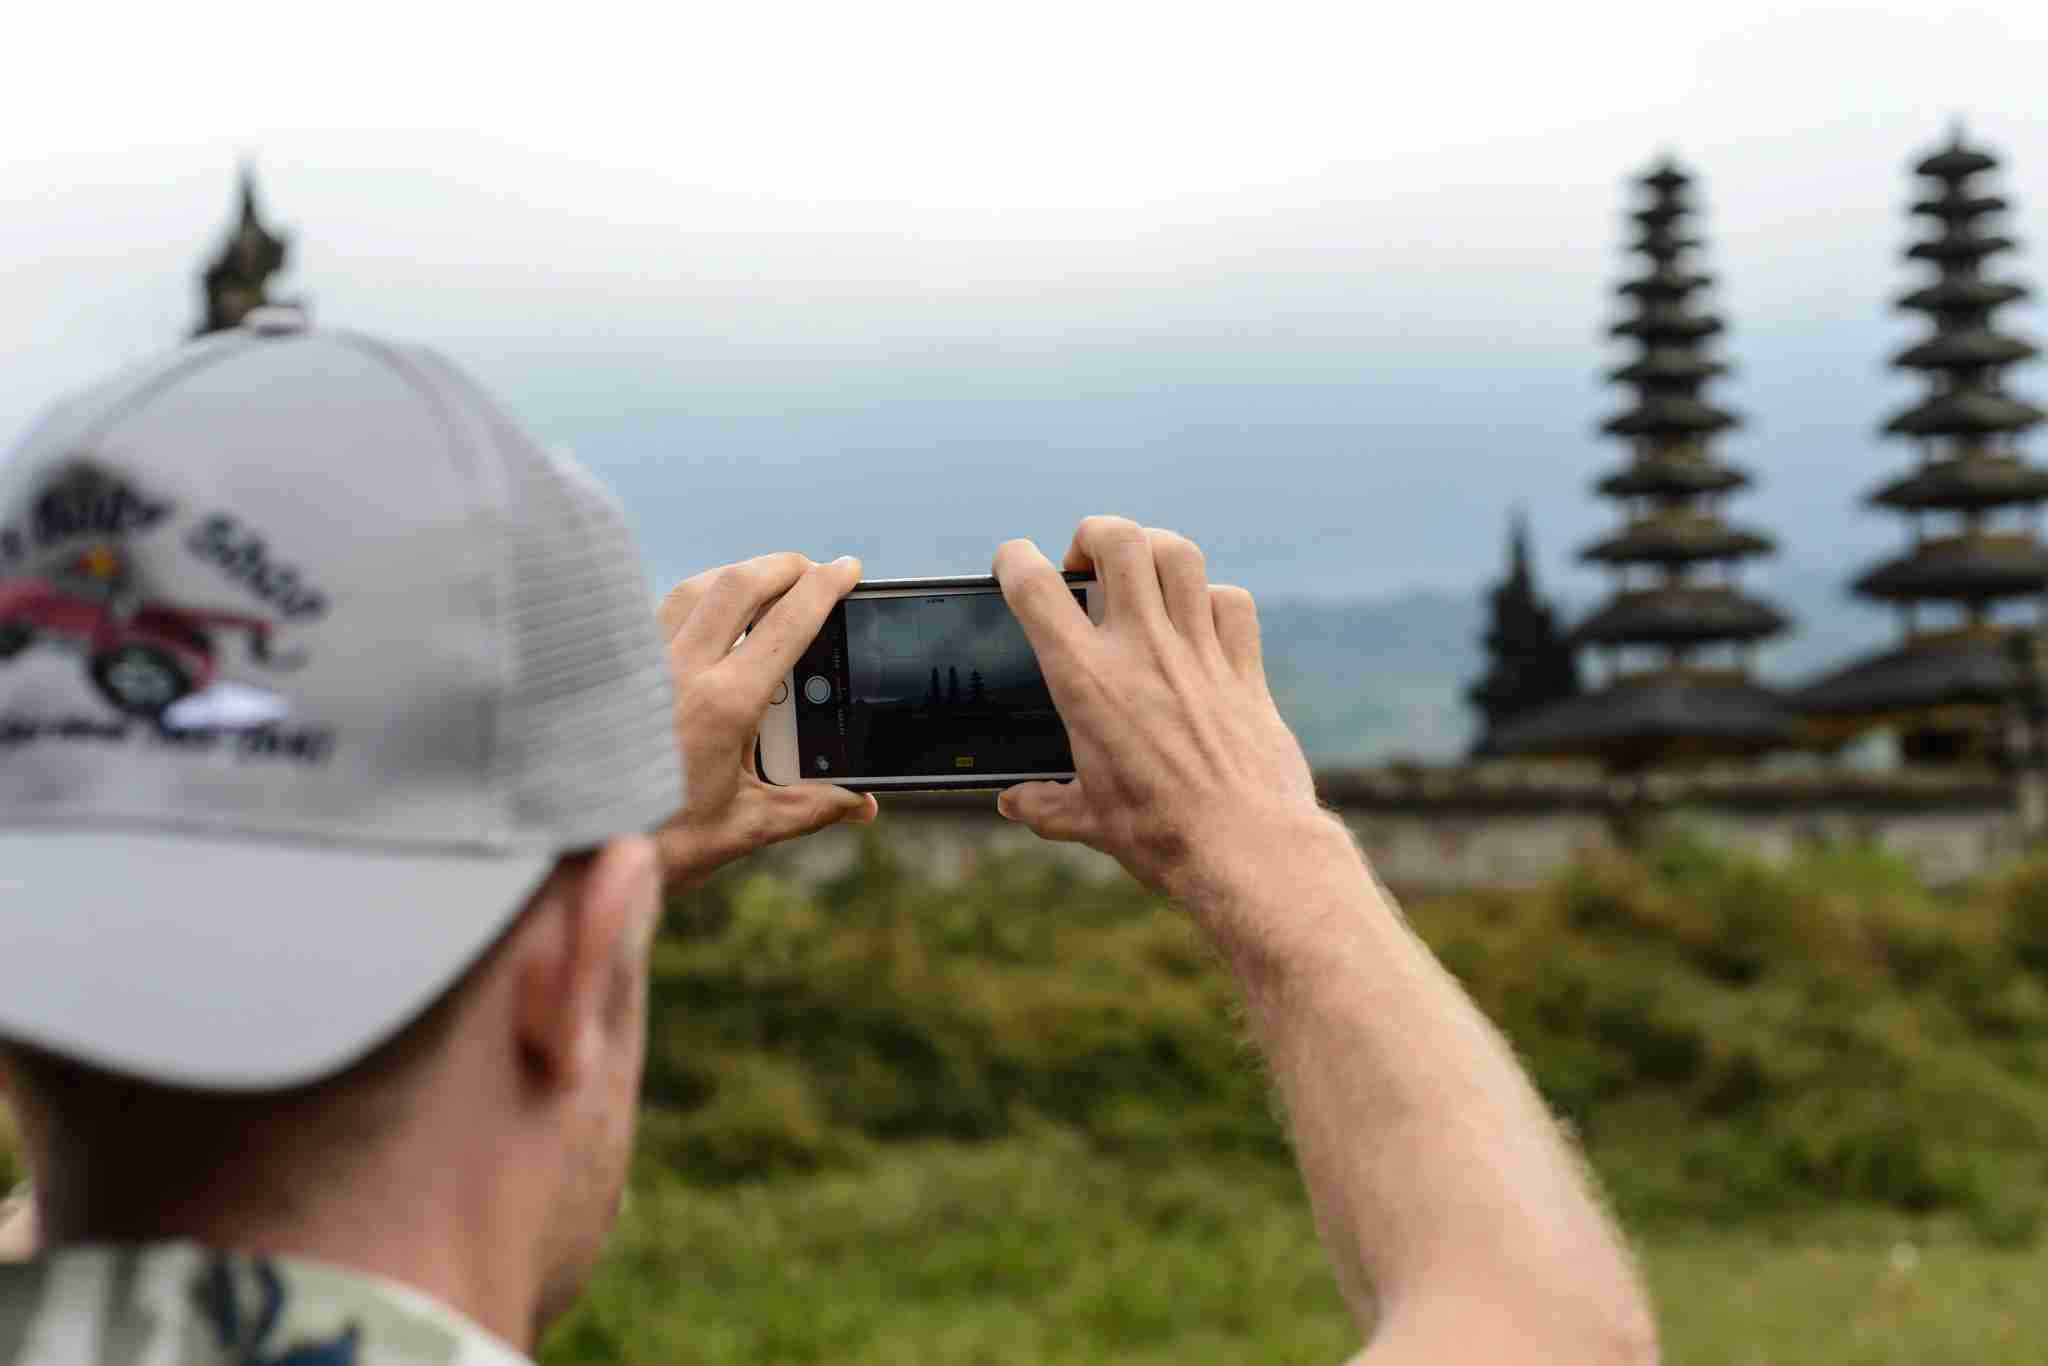 iphone-camera-cameraphone-photo-photography-framing-bali-indonesia